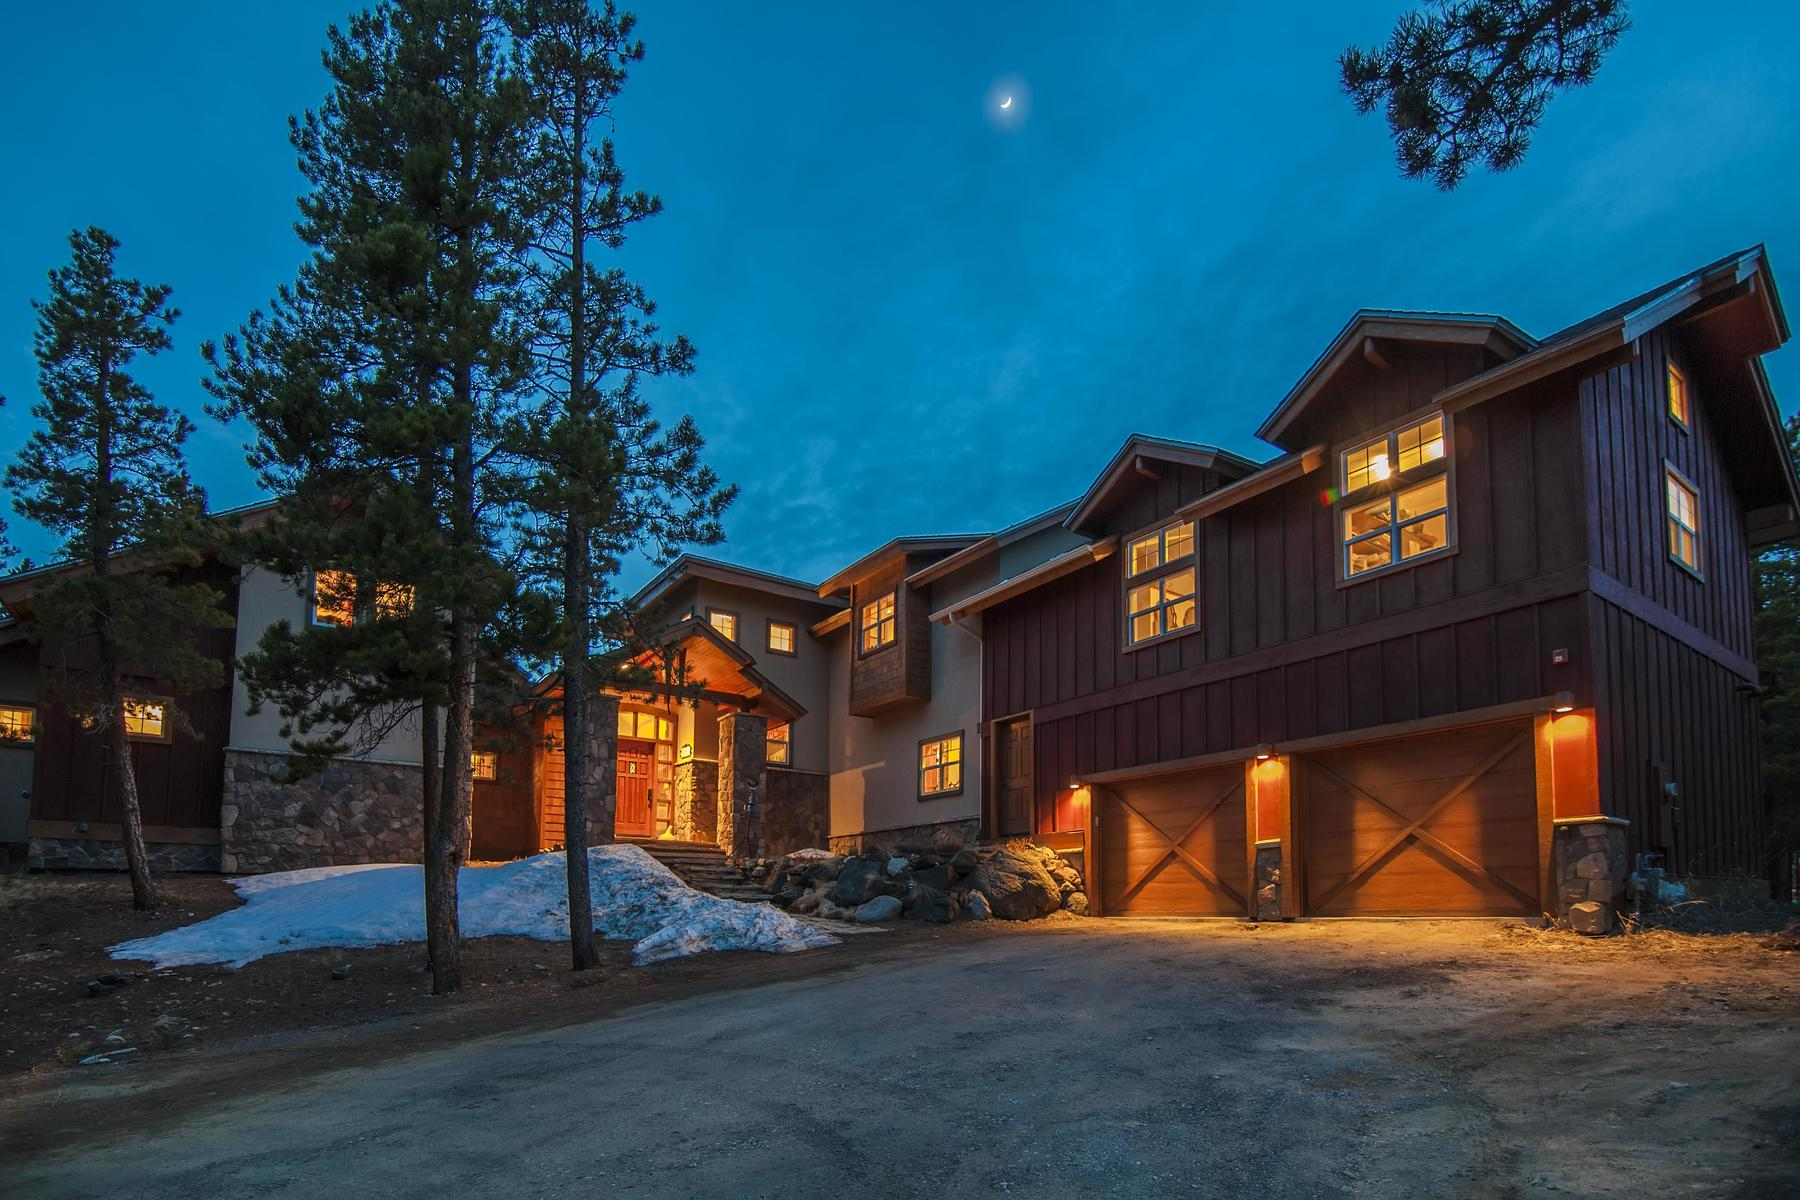 Single Family Homes for Sale at Sun-filled Dream Home in Desirable Mountain Community 255 Indian Peaks Drive Nederland, Colorado 80466 United States